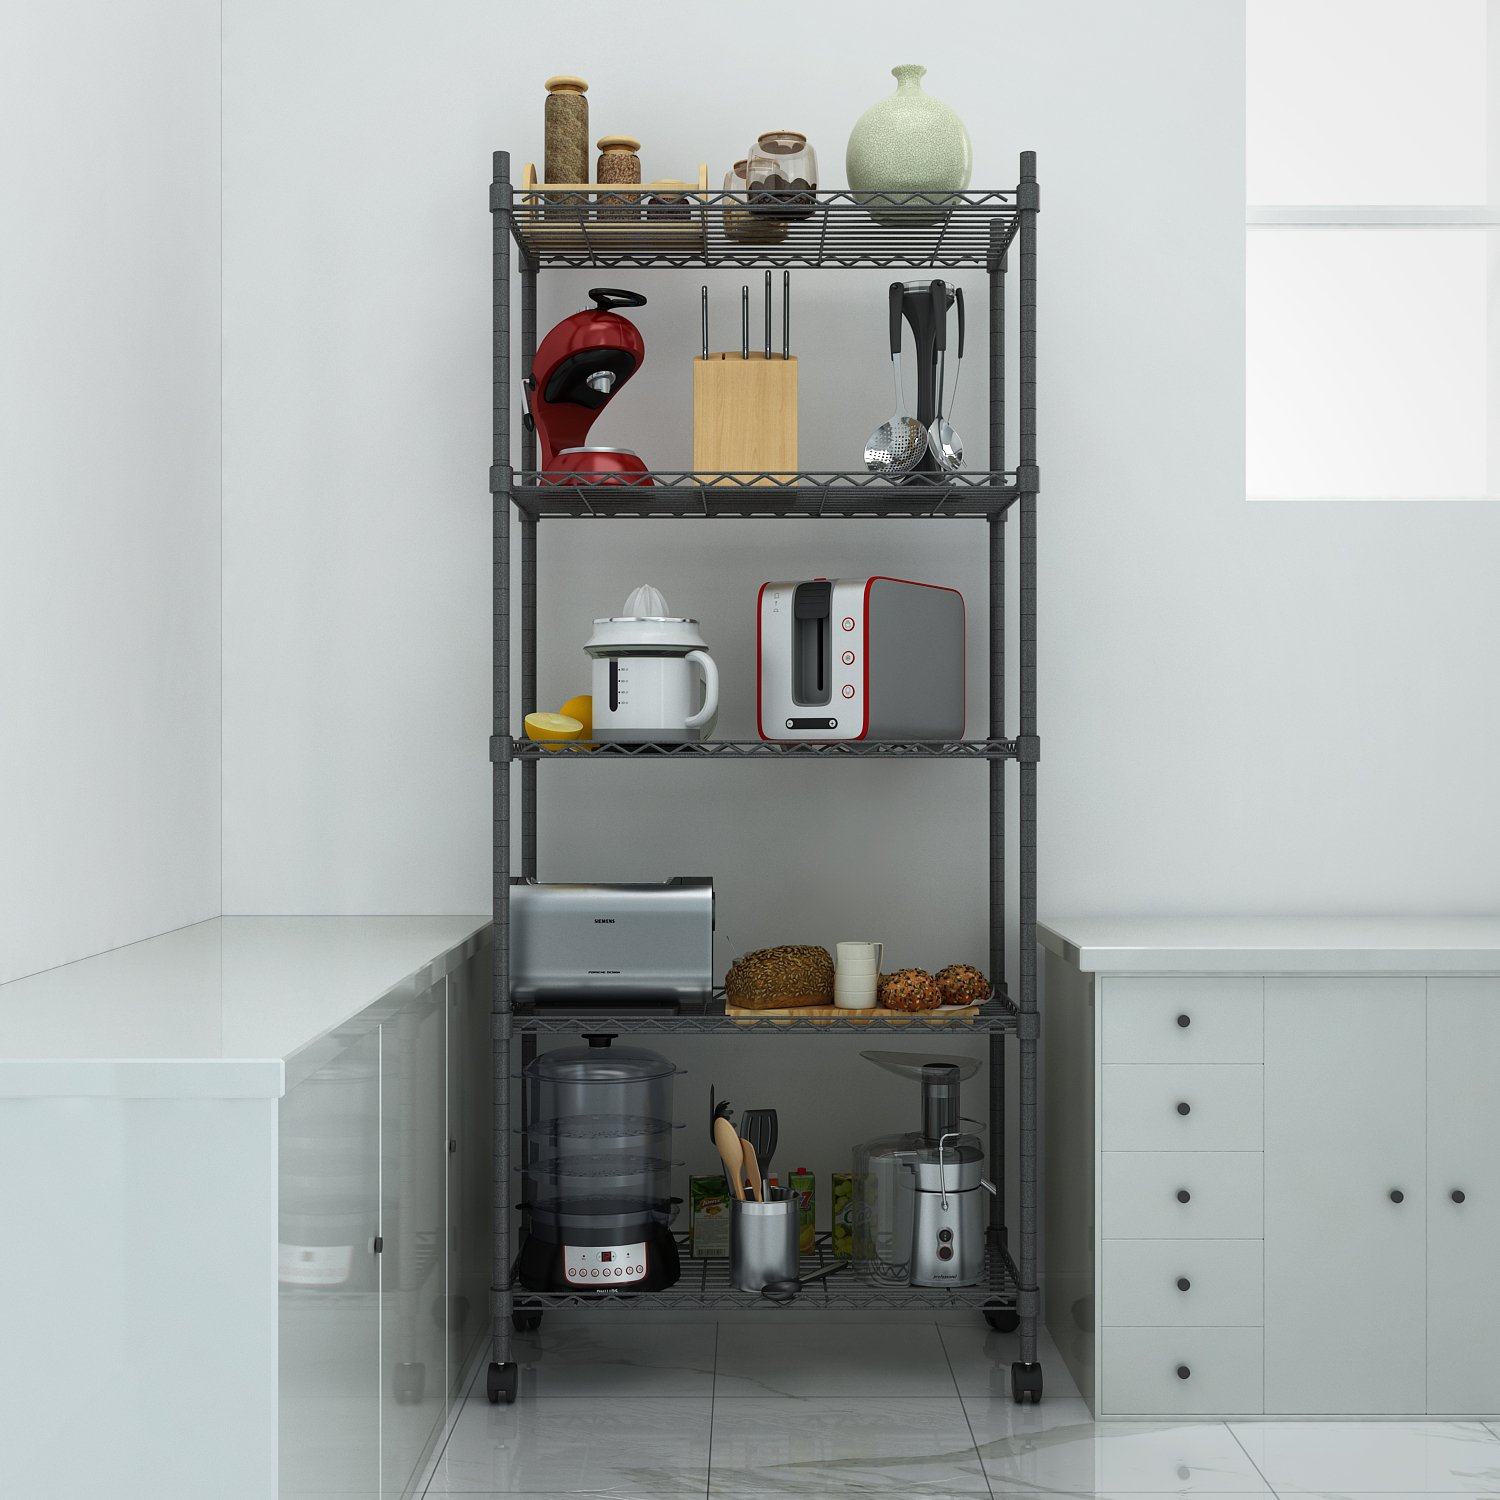 Homdox Metal Shelving Unit 5 Shelf Steel Wire Shelves Room Wiring And With Wheels Storage Rack For Garage Kitchen Bedroomblack Dining